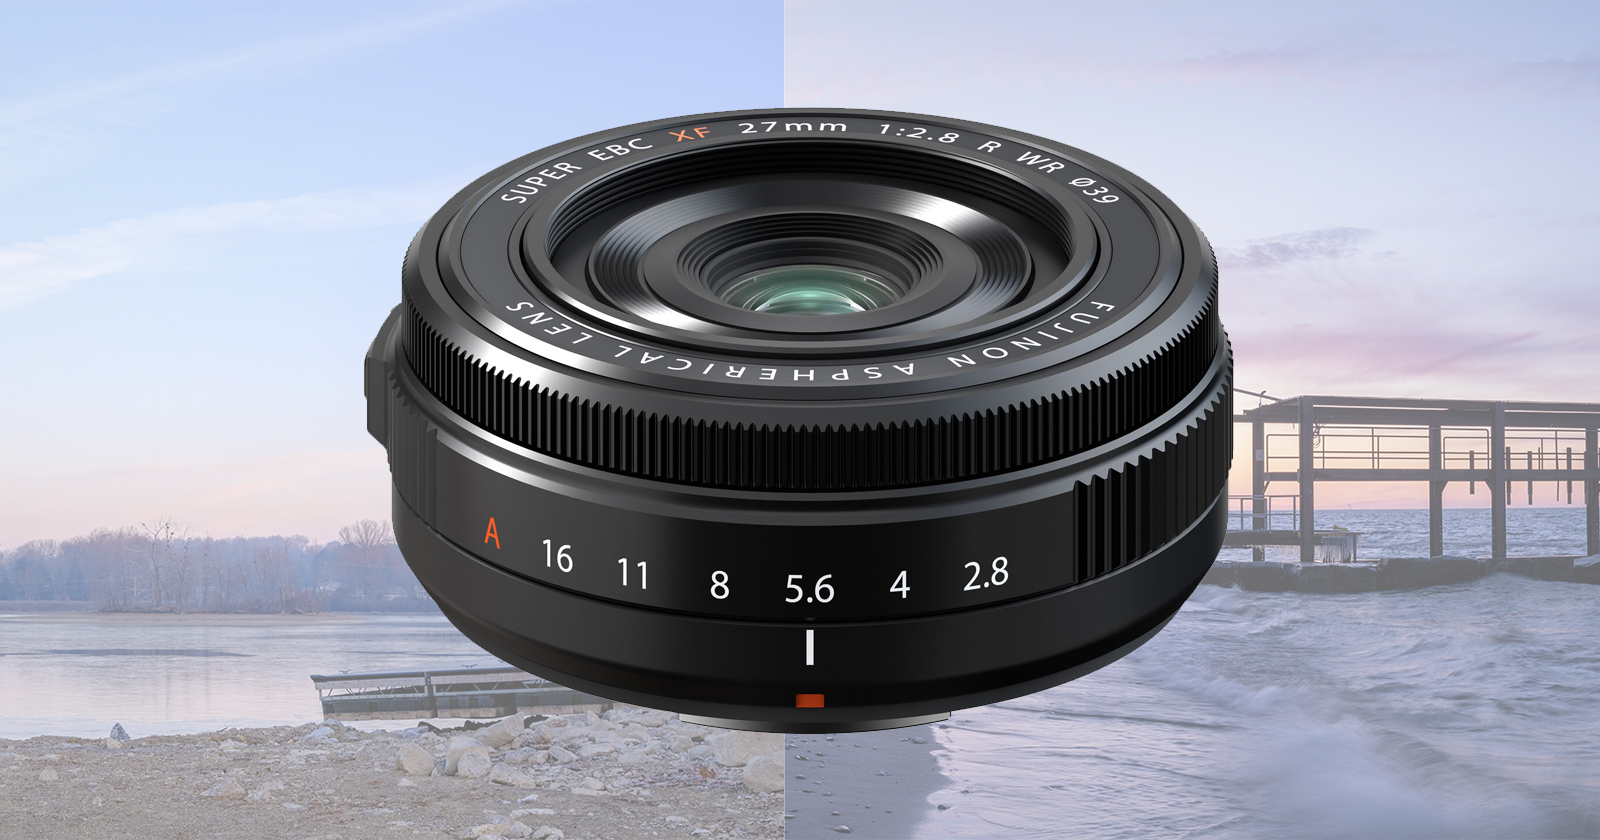 First Impressions of the Fujifilm XF 27mm f/2.8 Pancake Lens